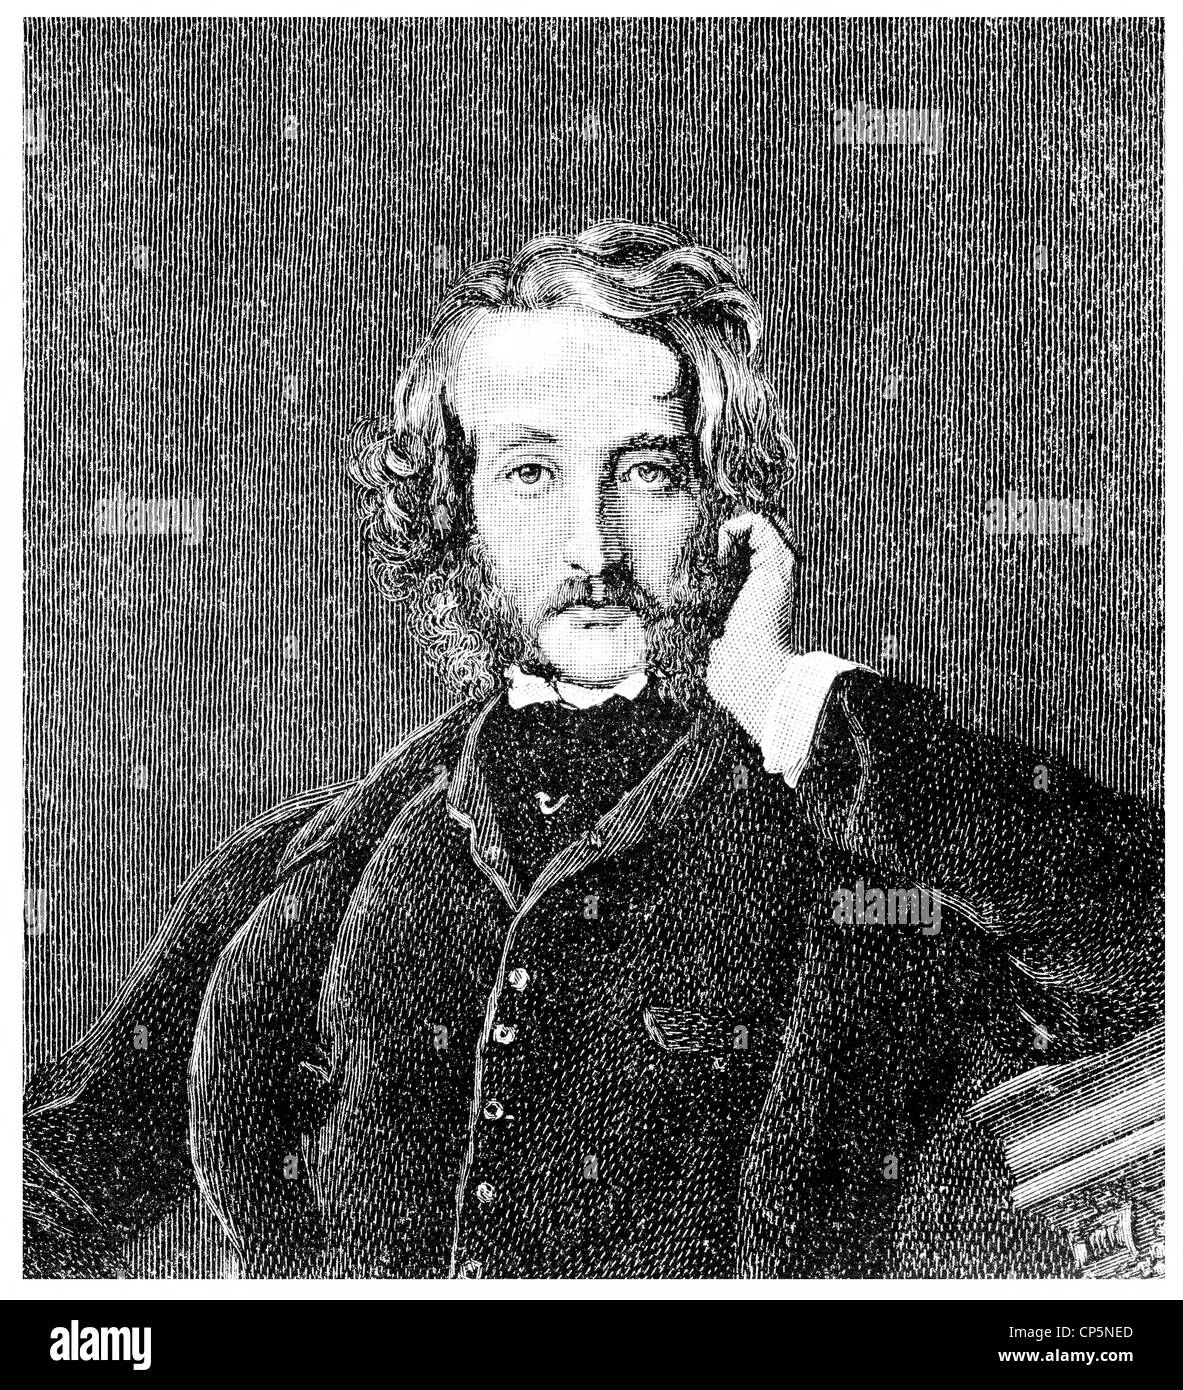 Edward George Earle Lytton Bulwer-Lytton, 1803 - 1873, an English politician, poet and playwright Stock Photo